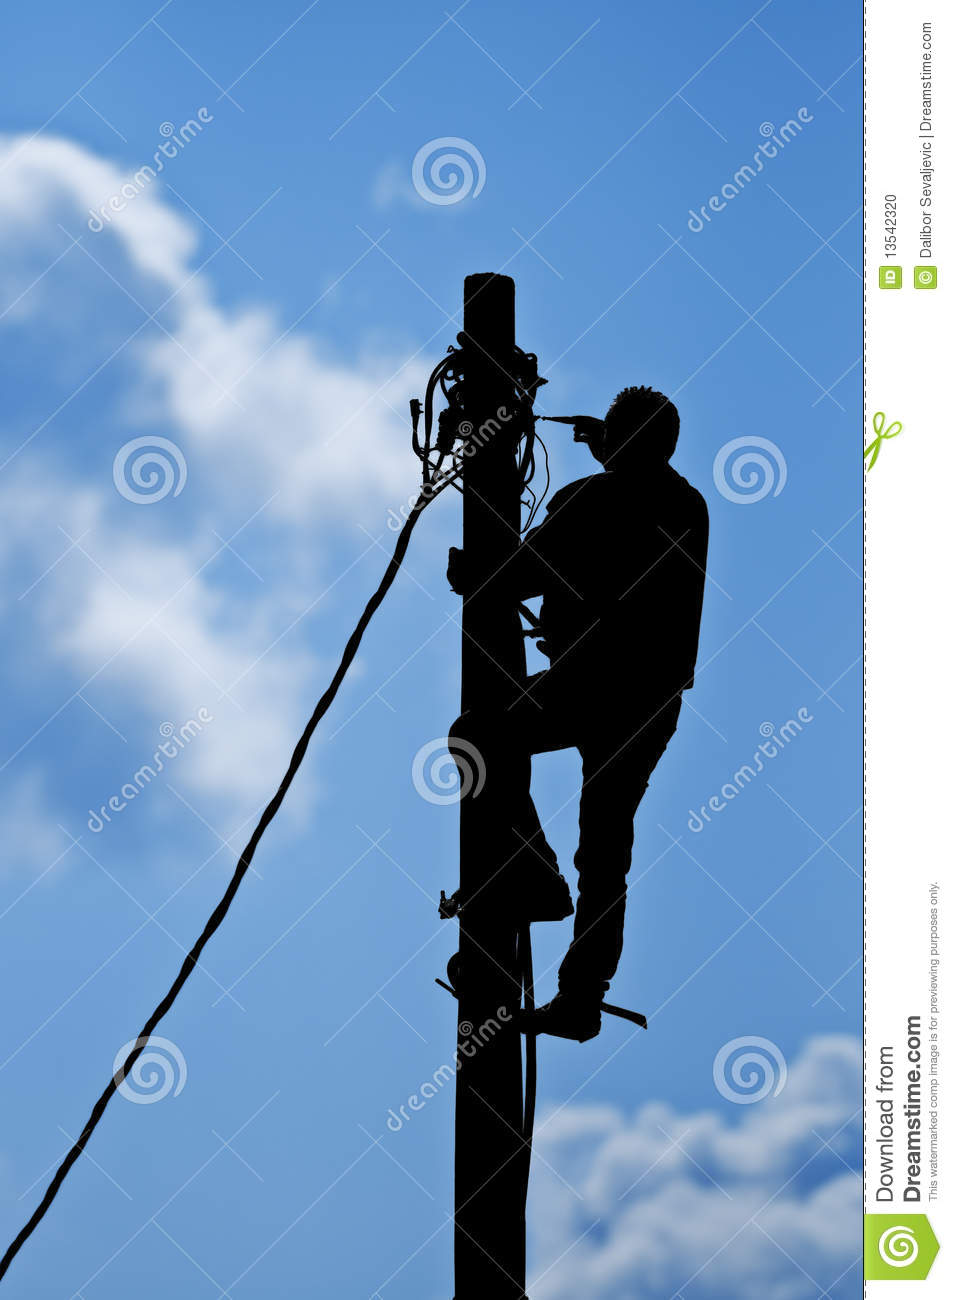 Man Working On Pole Stock Photo Image 13542320